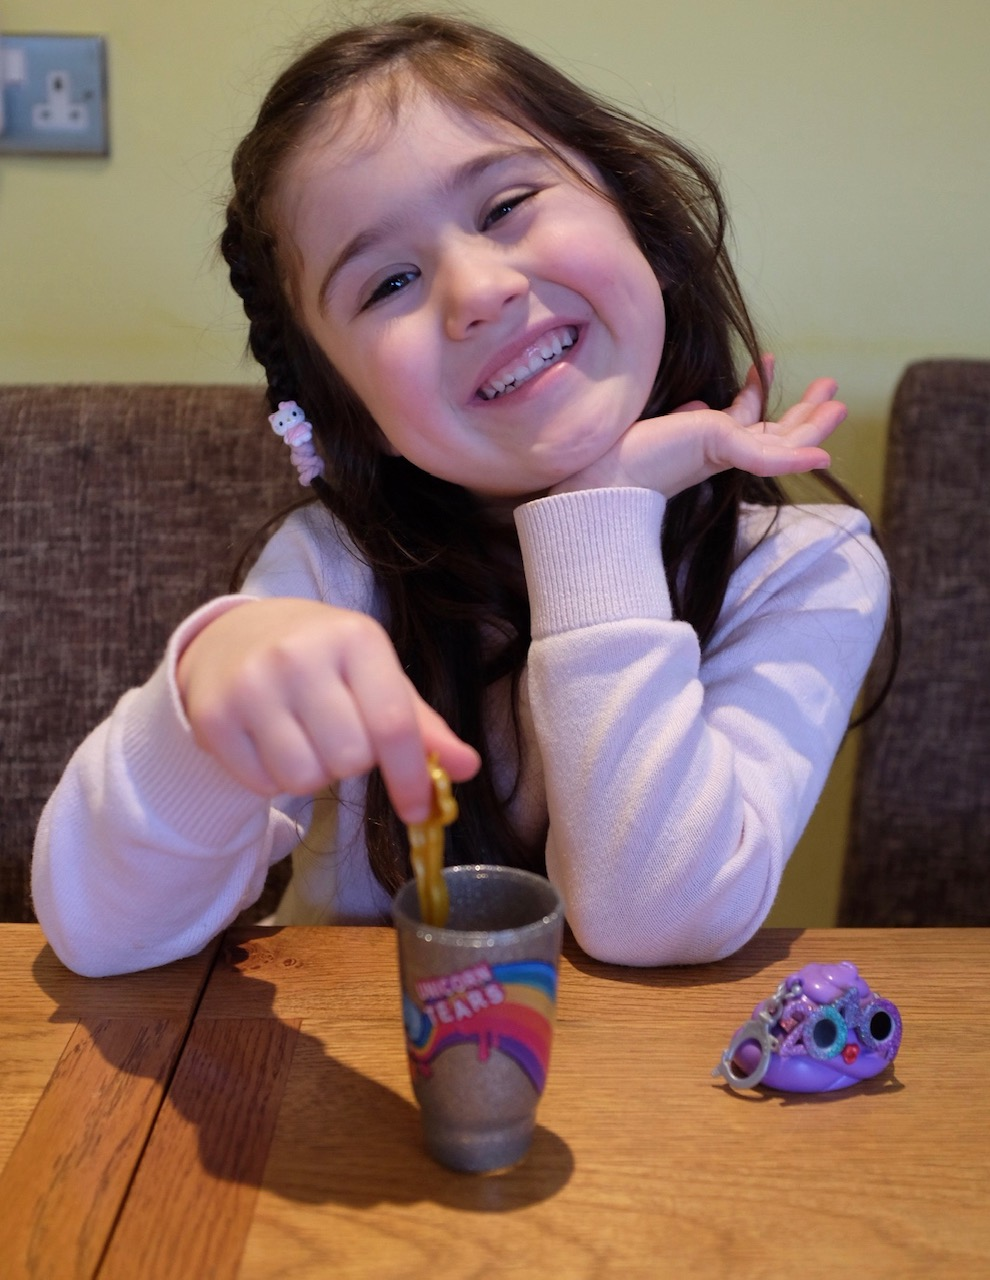 girl mixing up poopsie slime from the Pooey Puitton